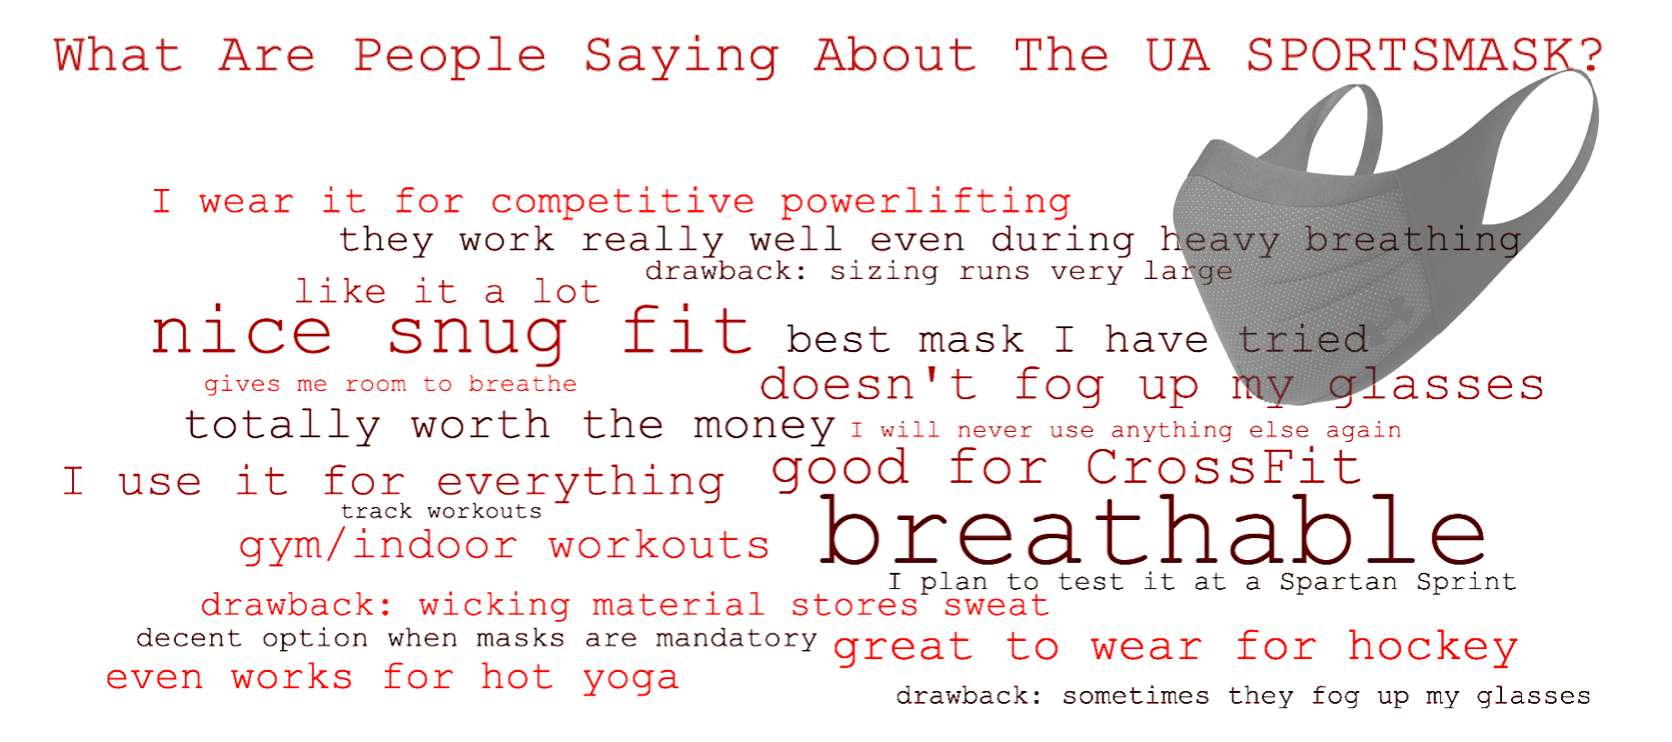 UA SPORTSMASK word cloud thoughts on effectiveness of mask for Spartan Race endurance  training